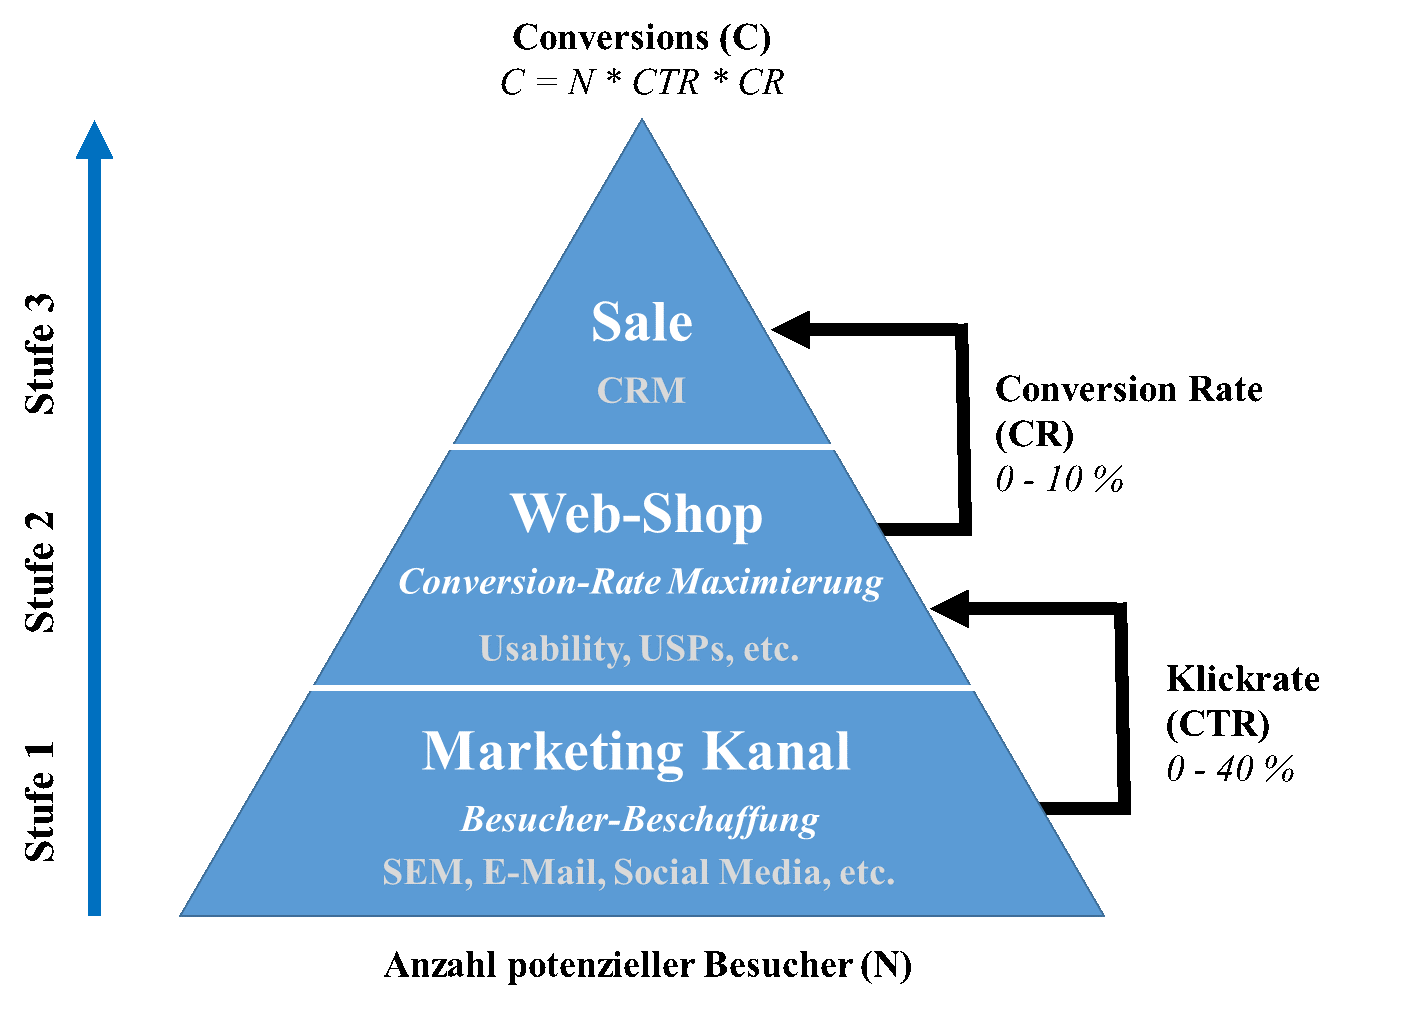 Pyramide Marketingkanäle Onlineshop SEO